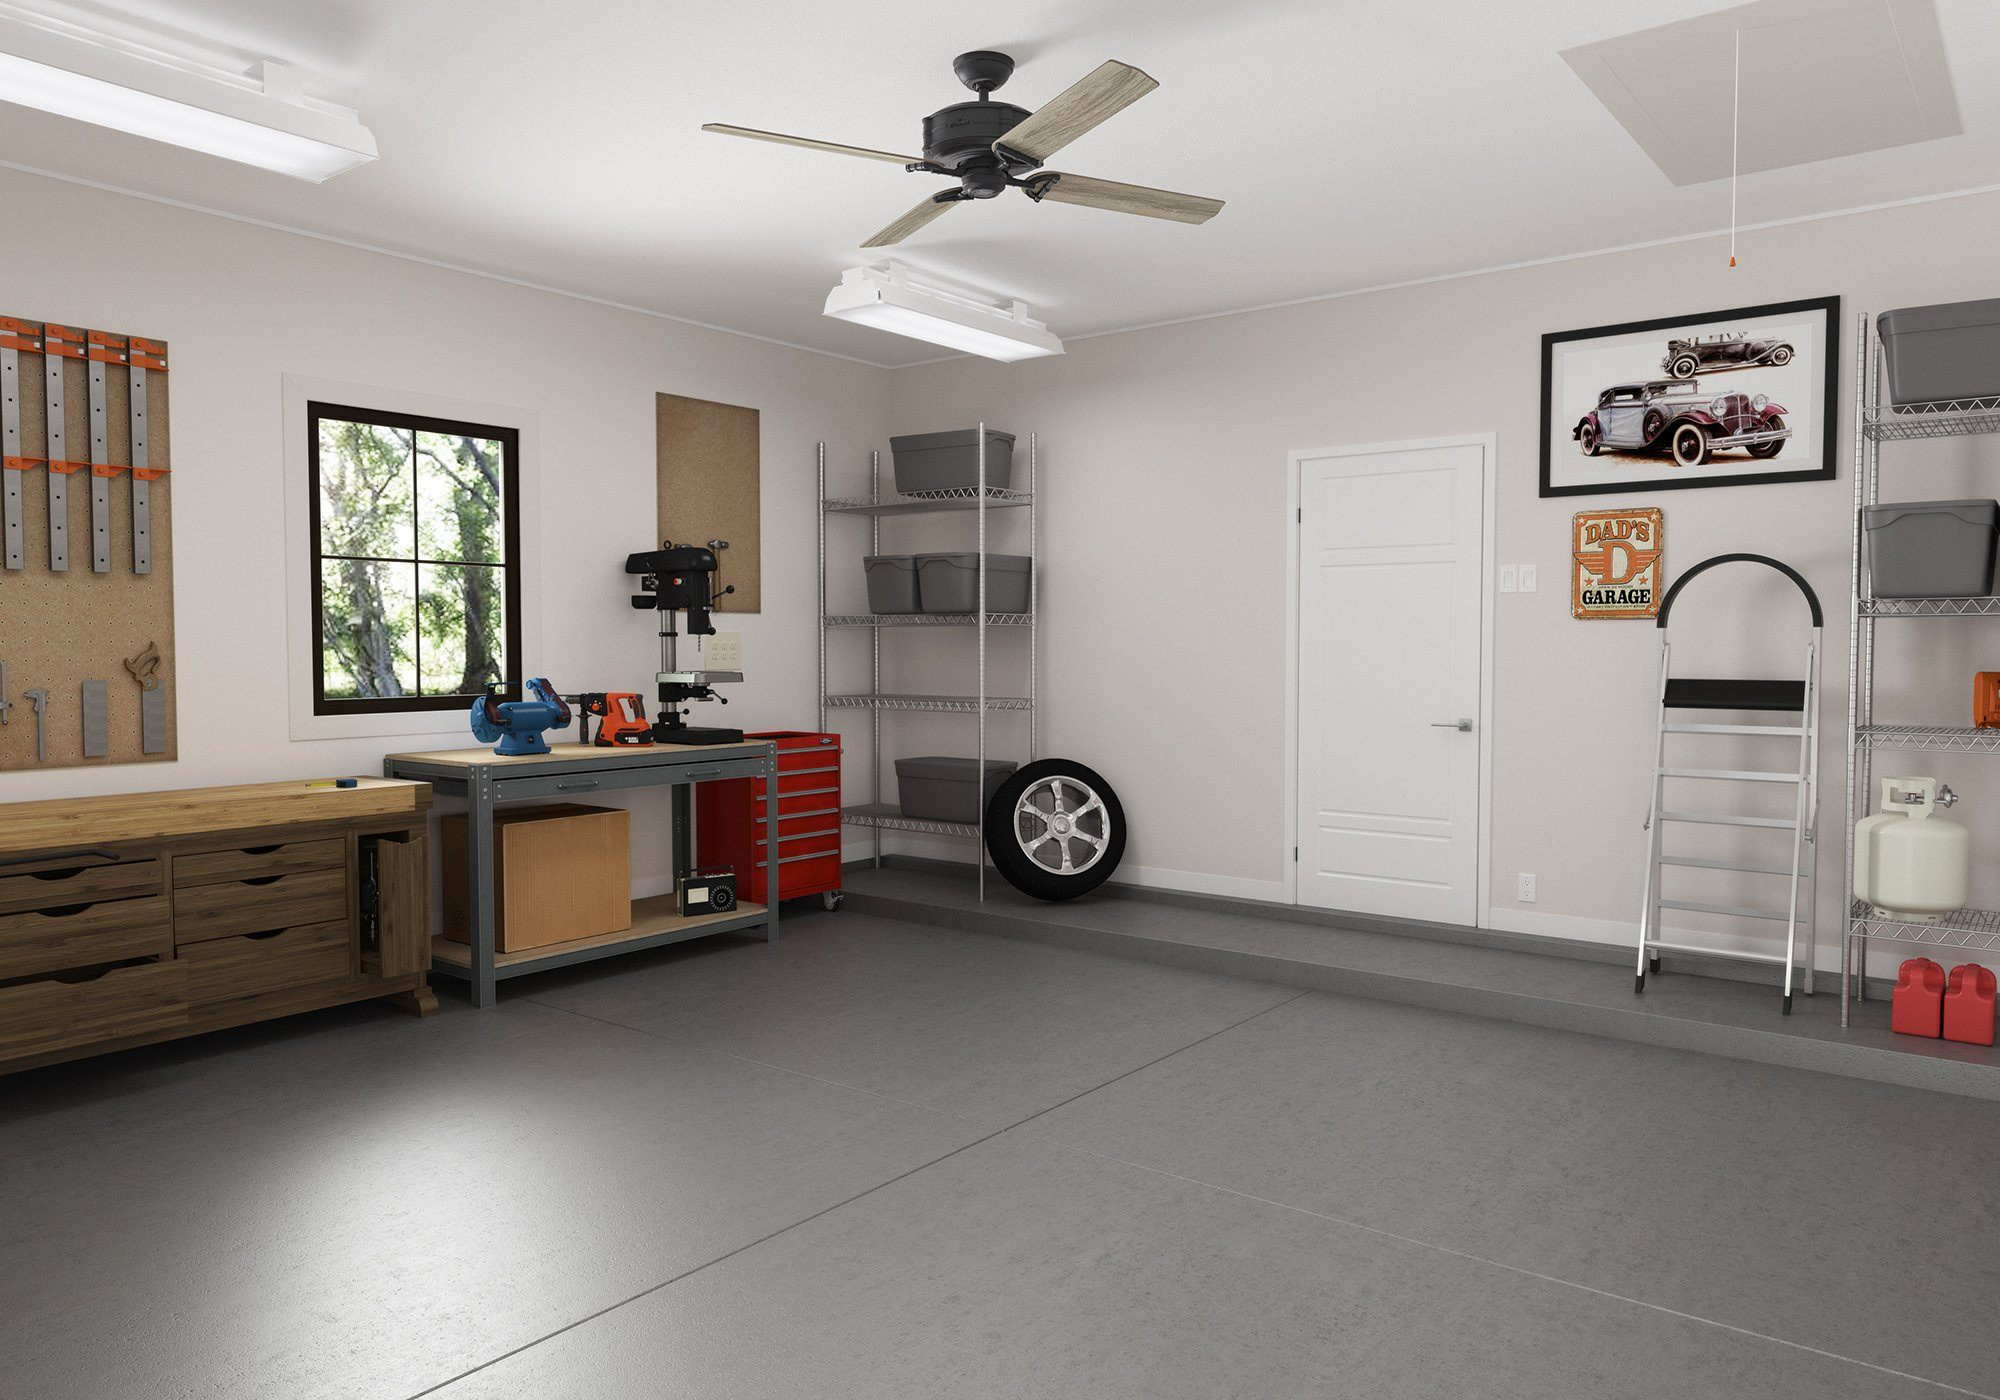 2020 Garage Updates You Can Do While Quarantined